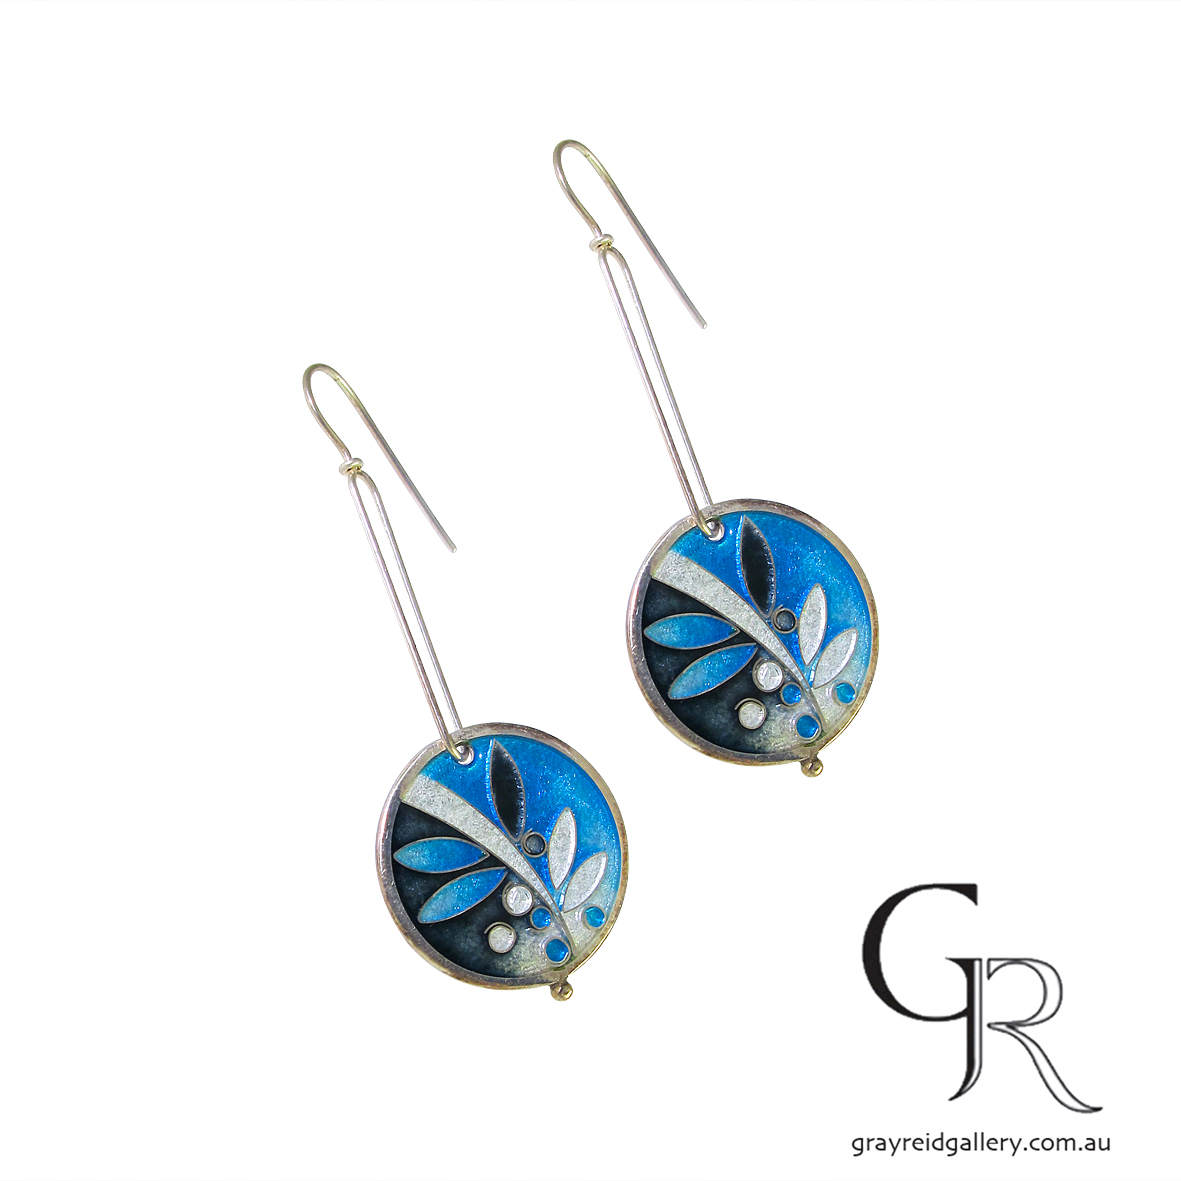 Enamel Earrings By Carolyn DelZoppo